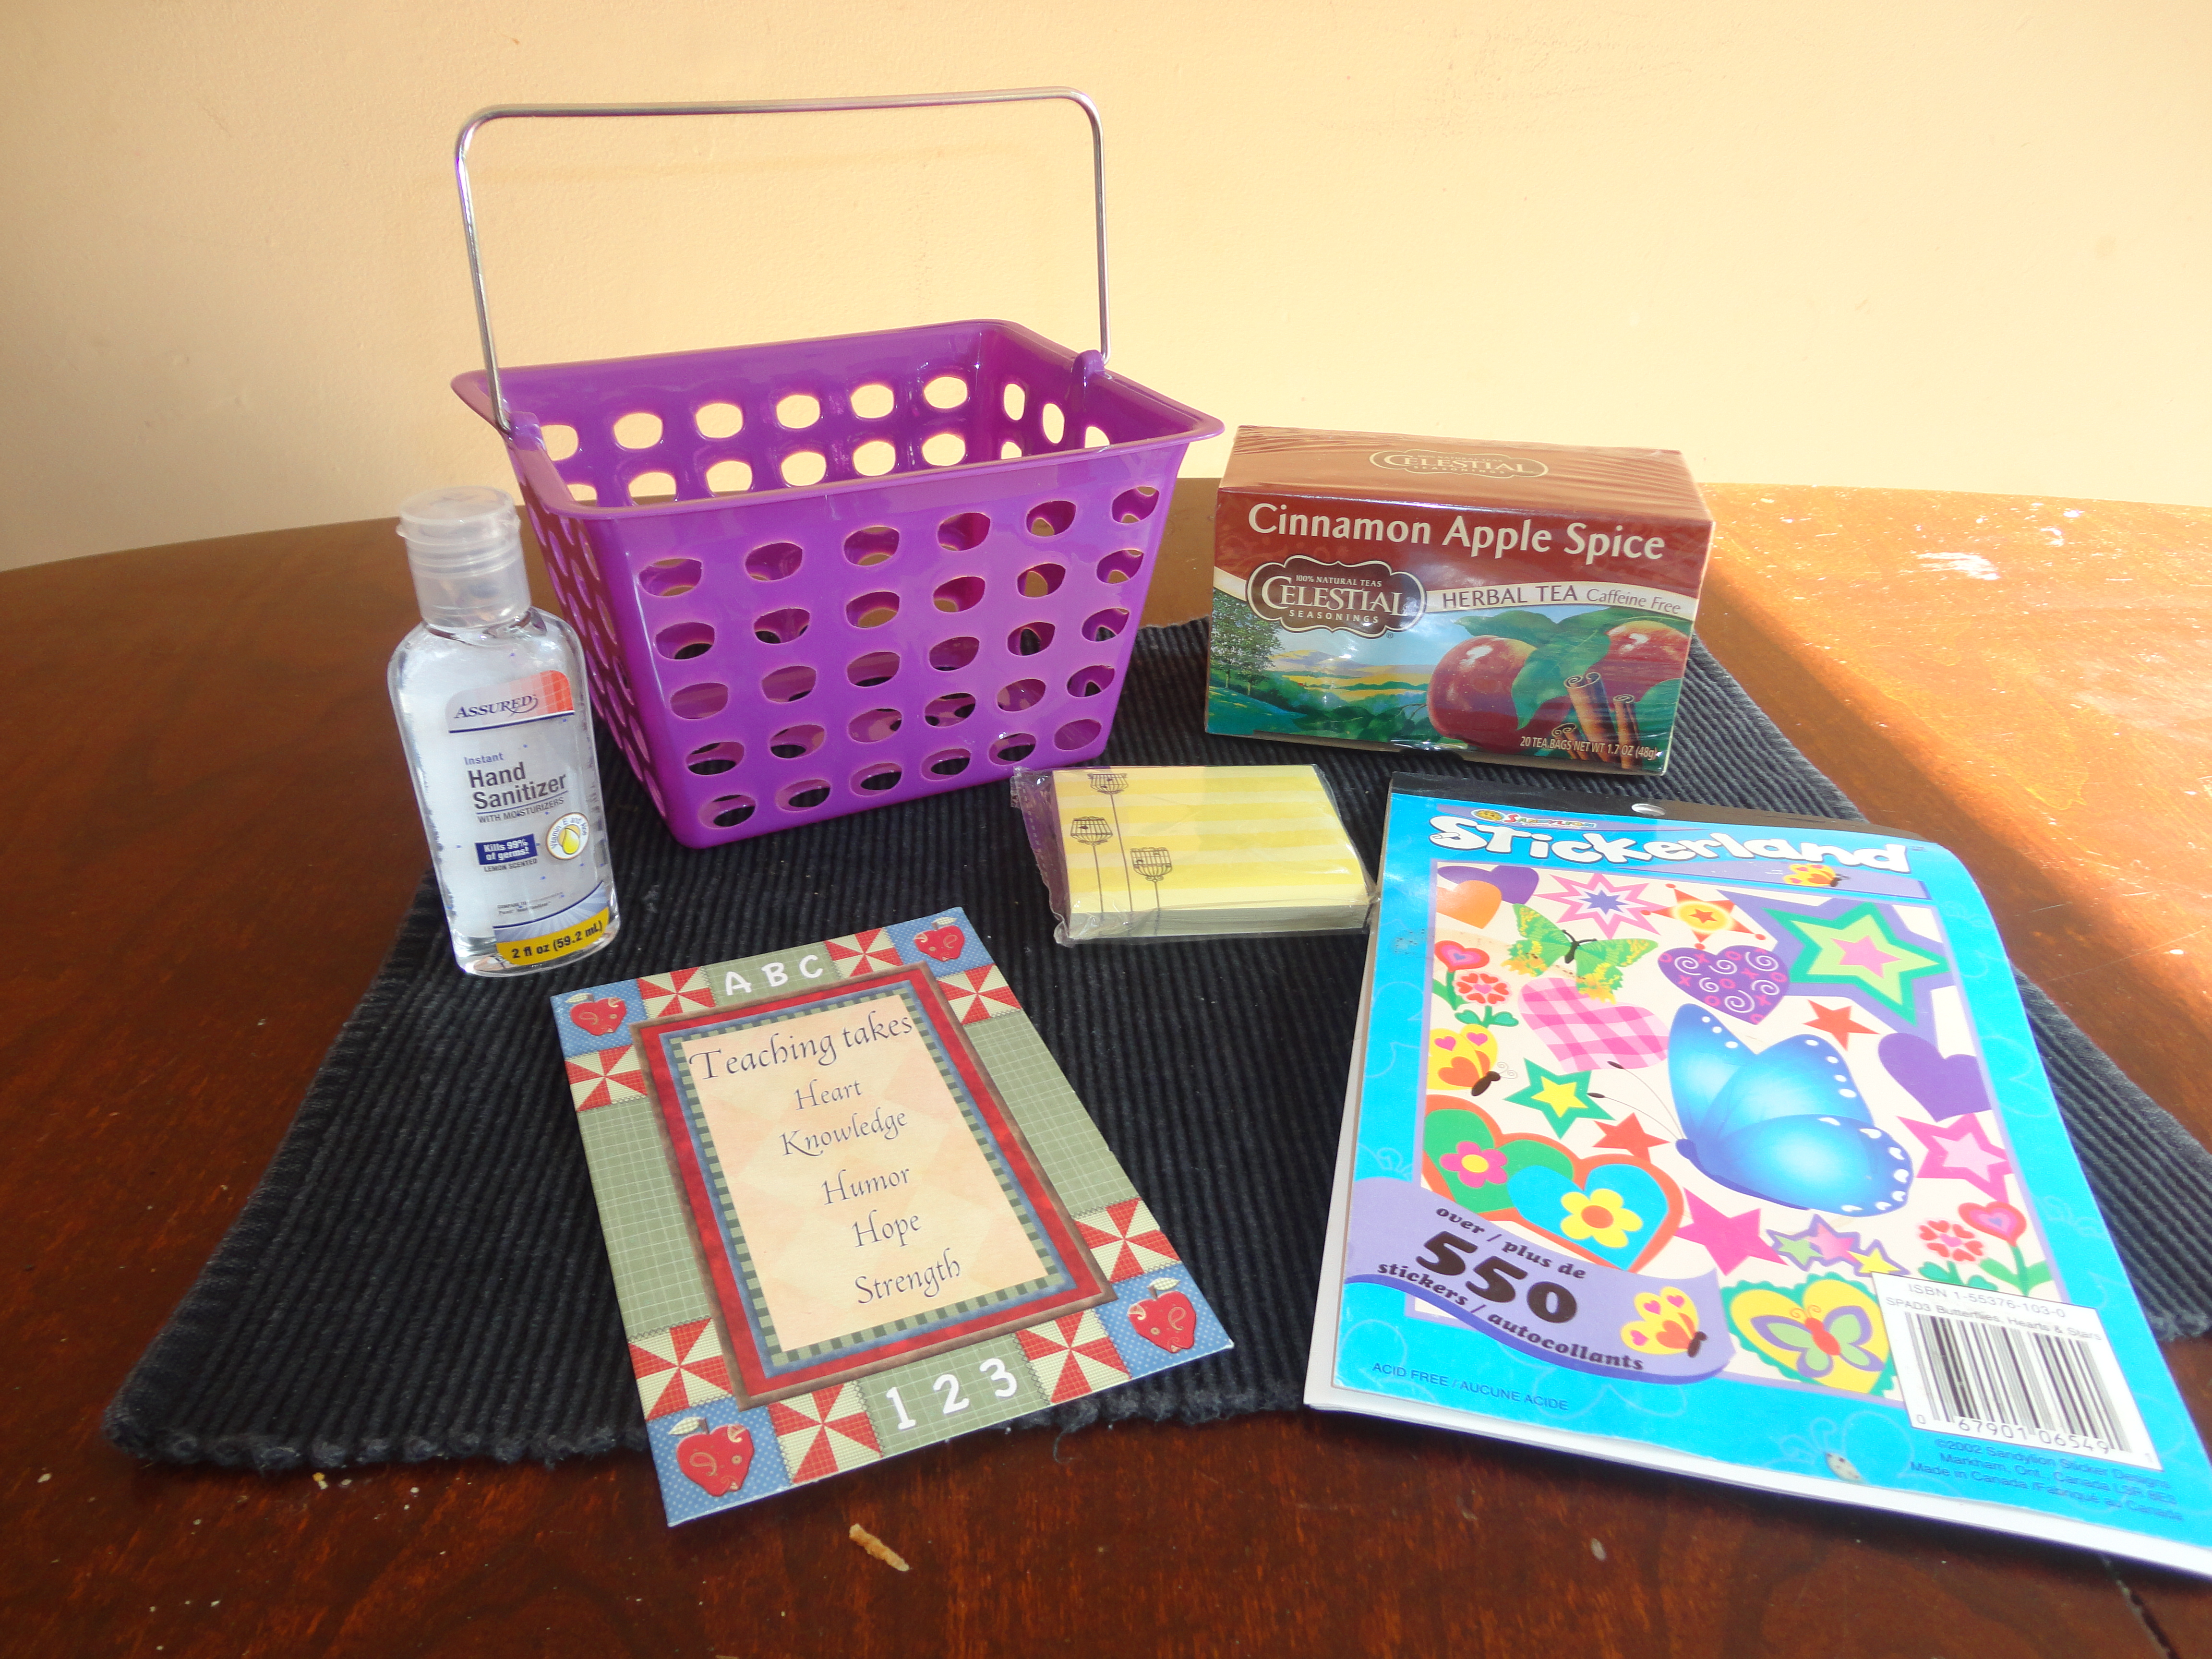 math worksheet : teacher gift basket back to school ideas  target giftcard  : Welcome Back To School Gift Ideas For Teachers